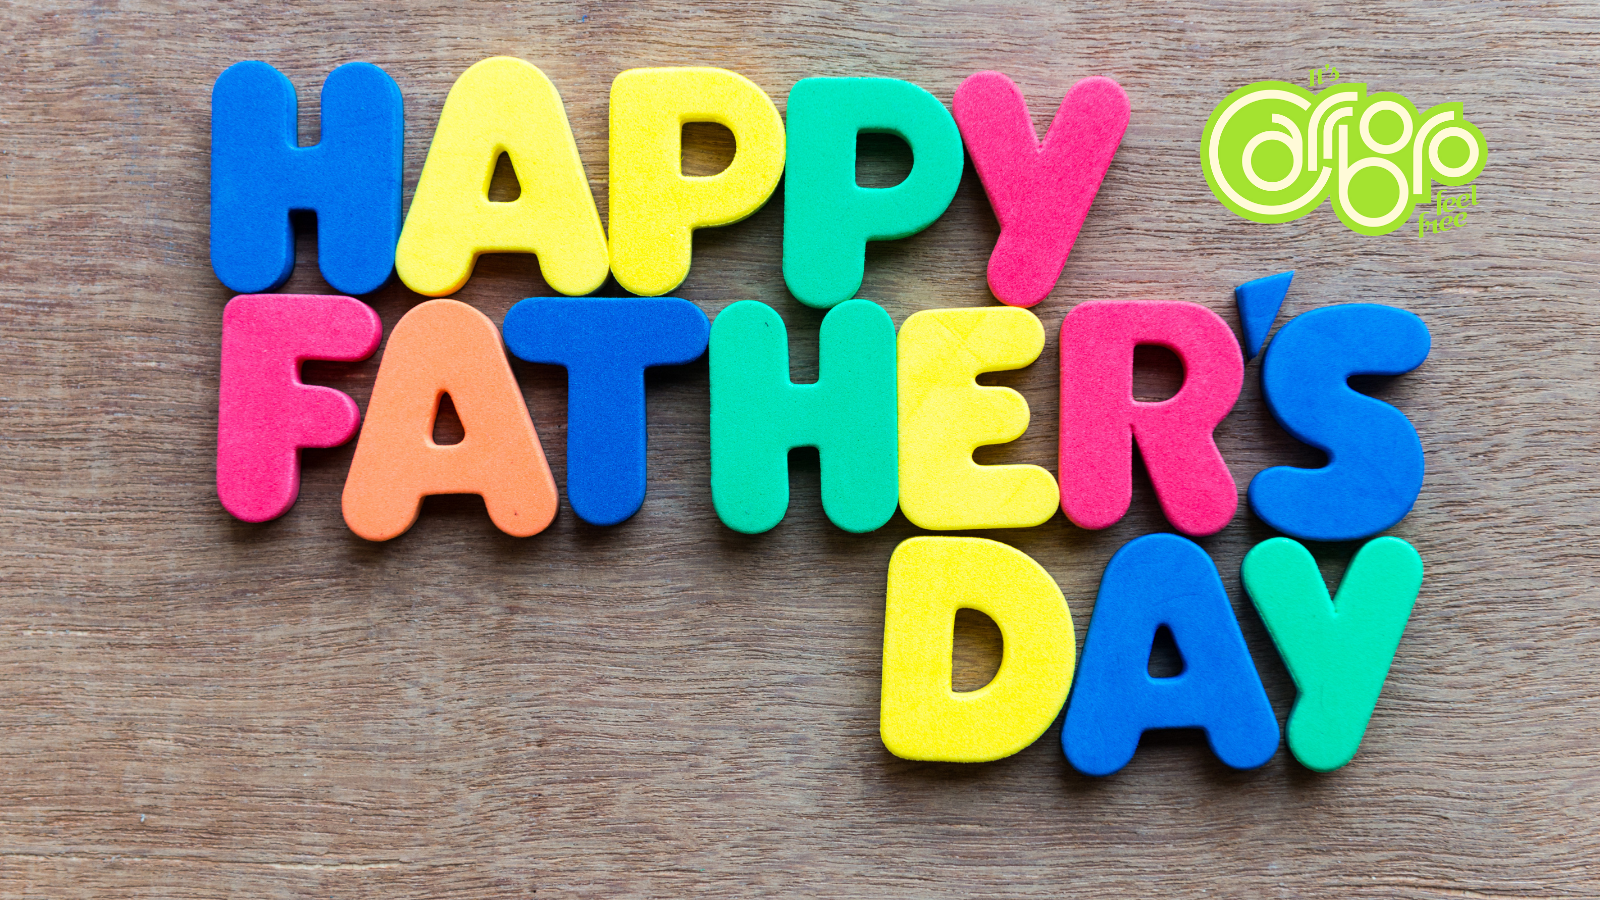 Twitter Happy Fathers Day